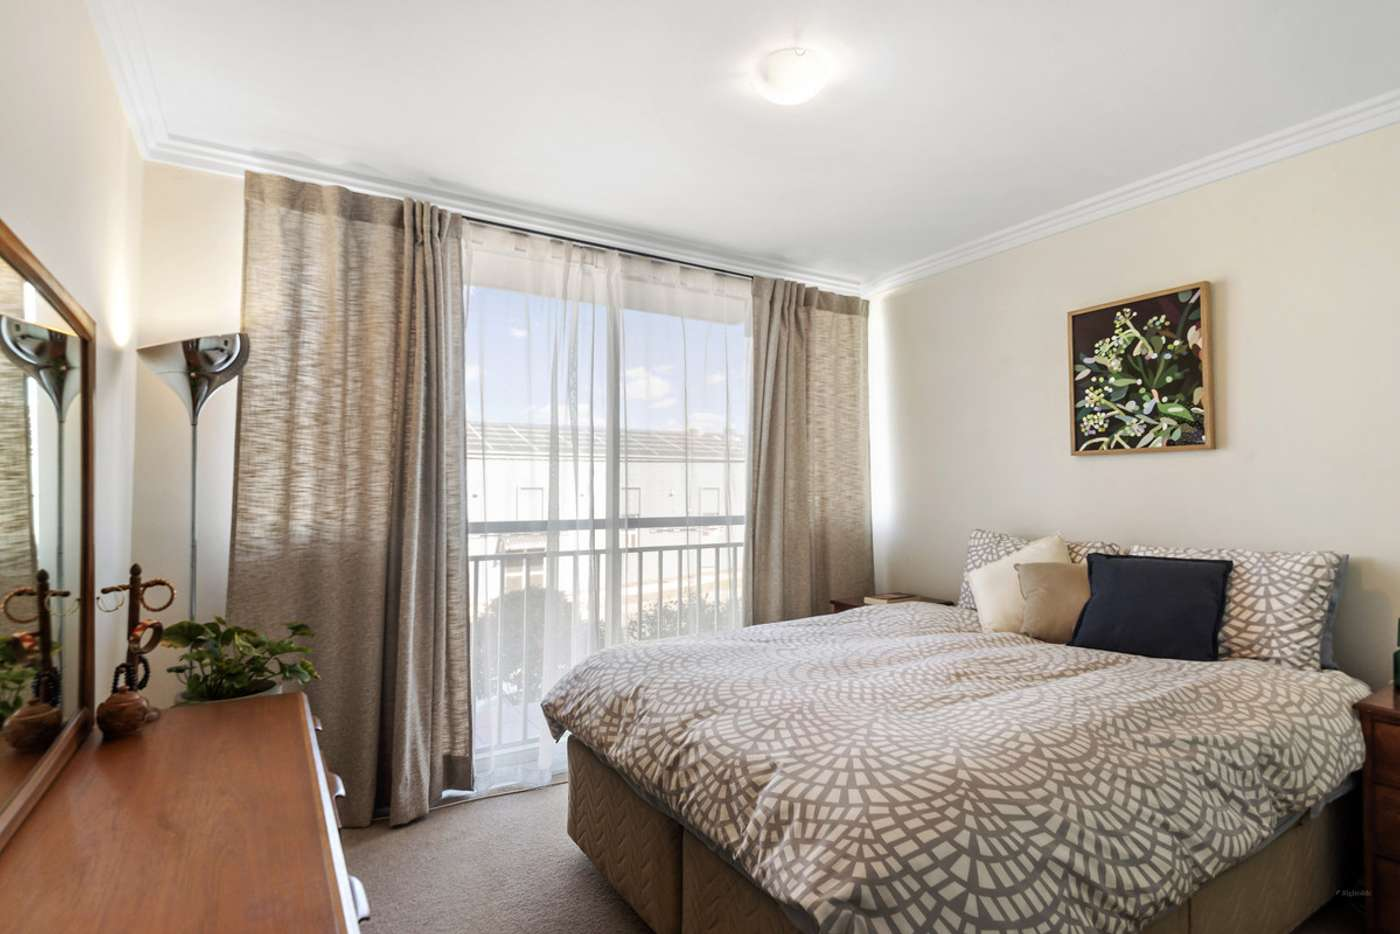 Sixth view of Homely apartment listing, 19/41 Roseberry Street, Manly Vale NSW 2093